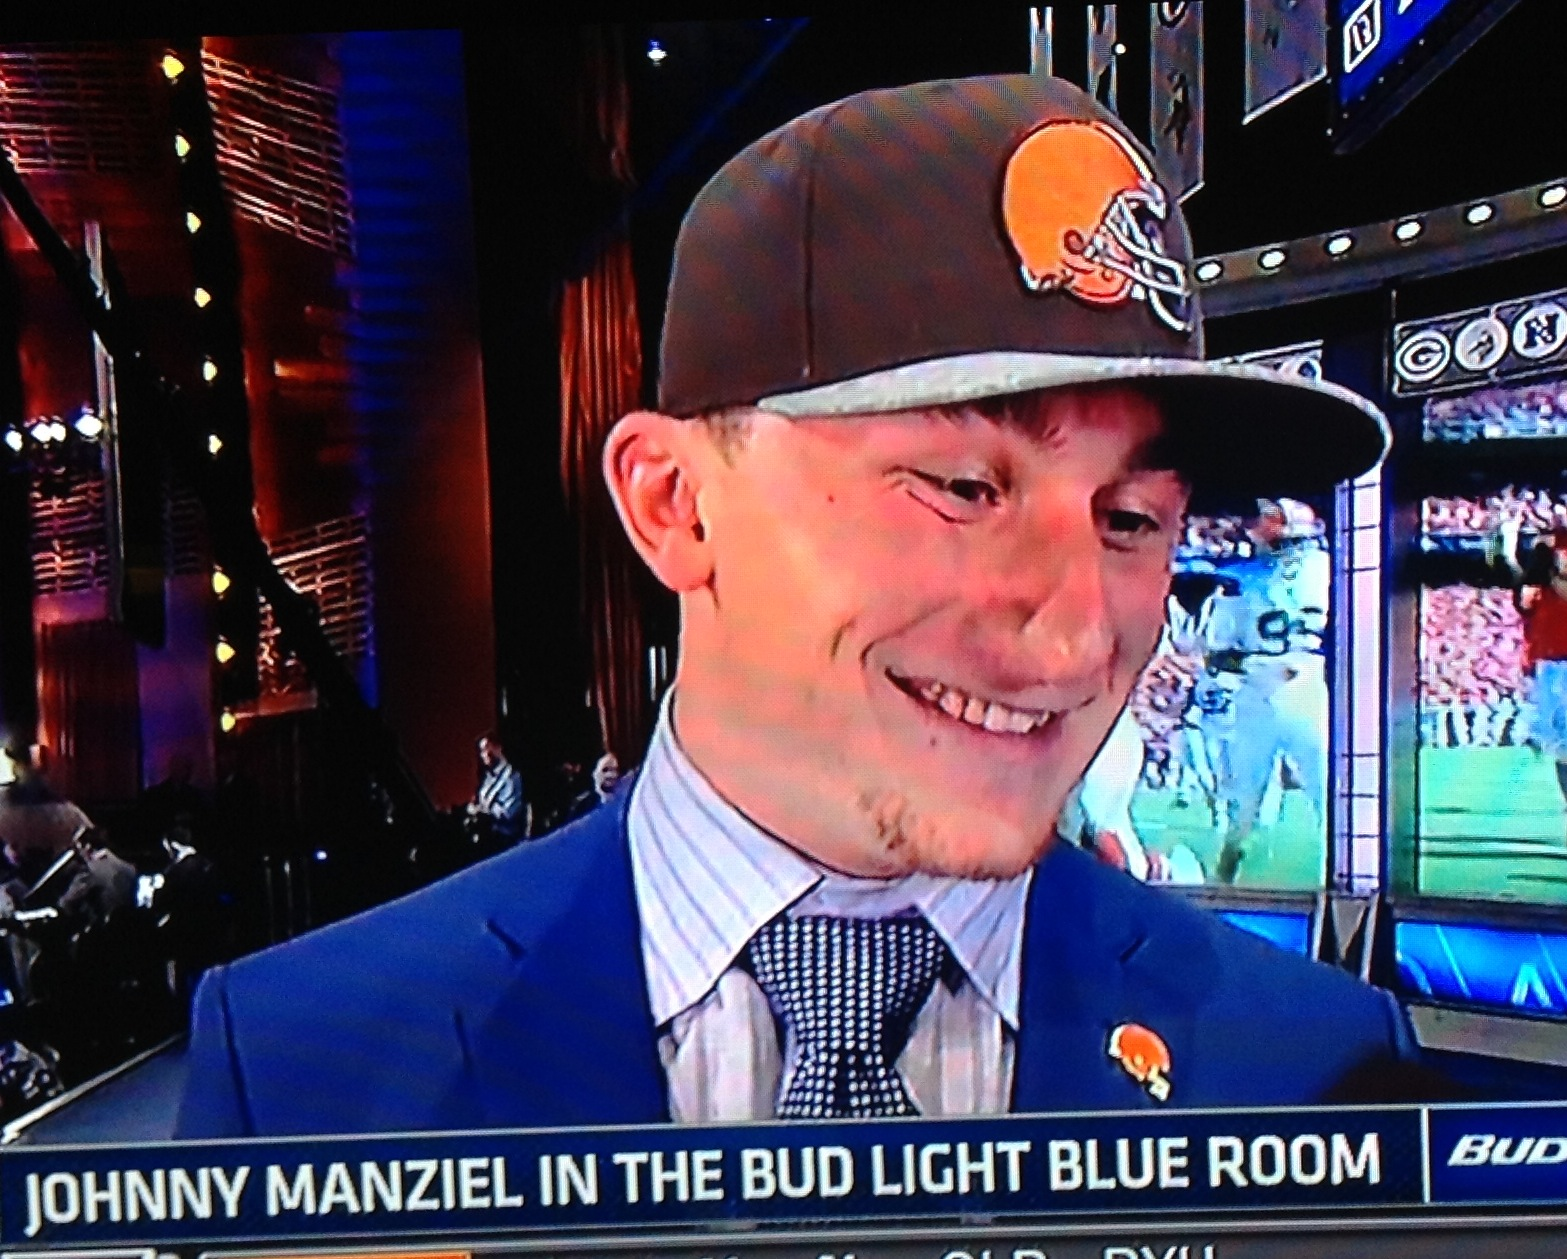 Johnny Manziel Smiling at NFL Draft